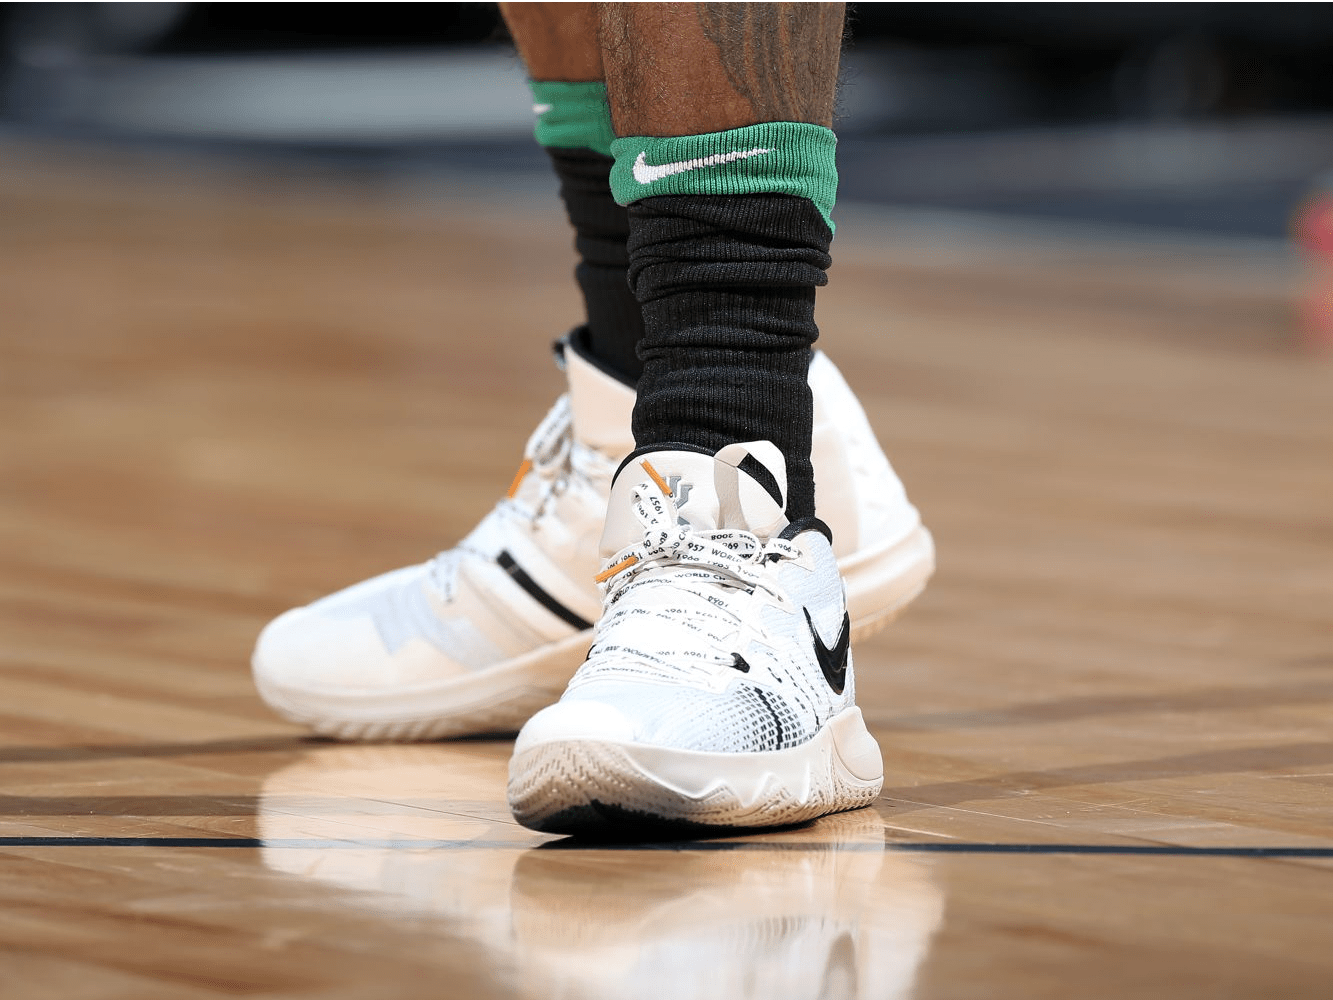 Which NBA player had the best sneakers